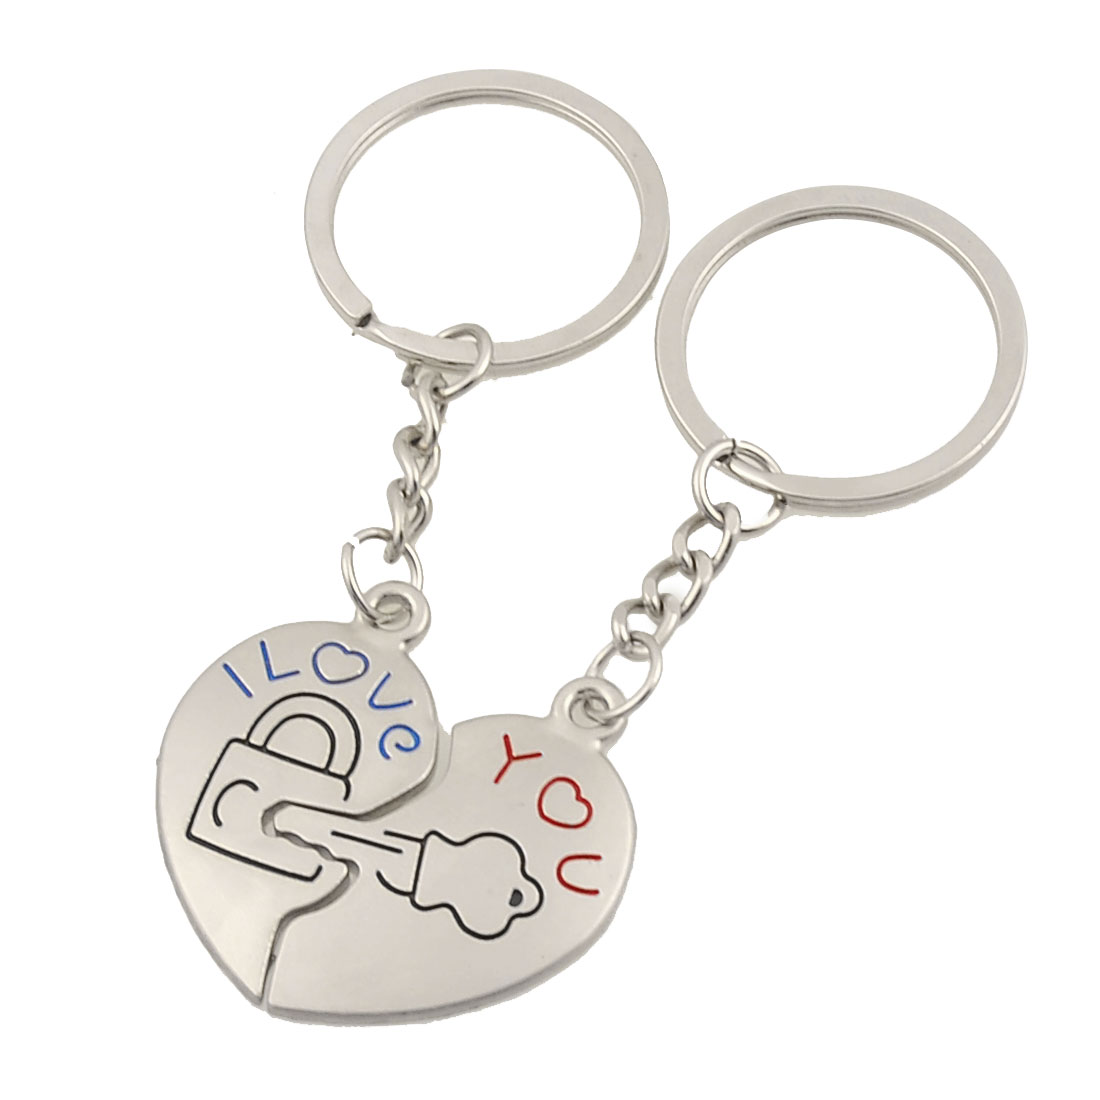 Lovers Metal Lock Key Dangling Letters Print Pendant Split Ring Keychain Silver Tone Pair